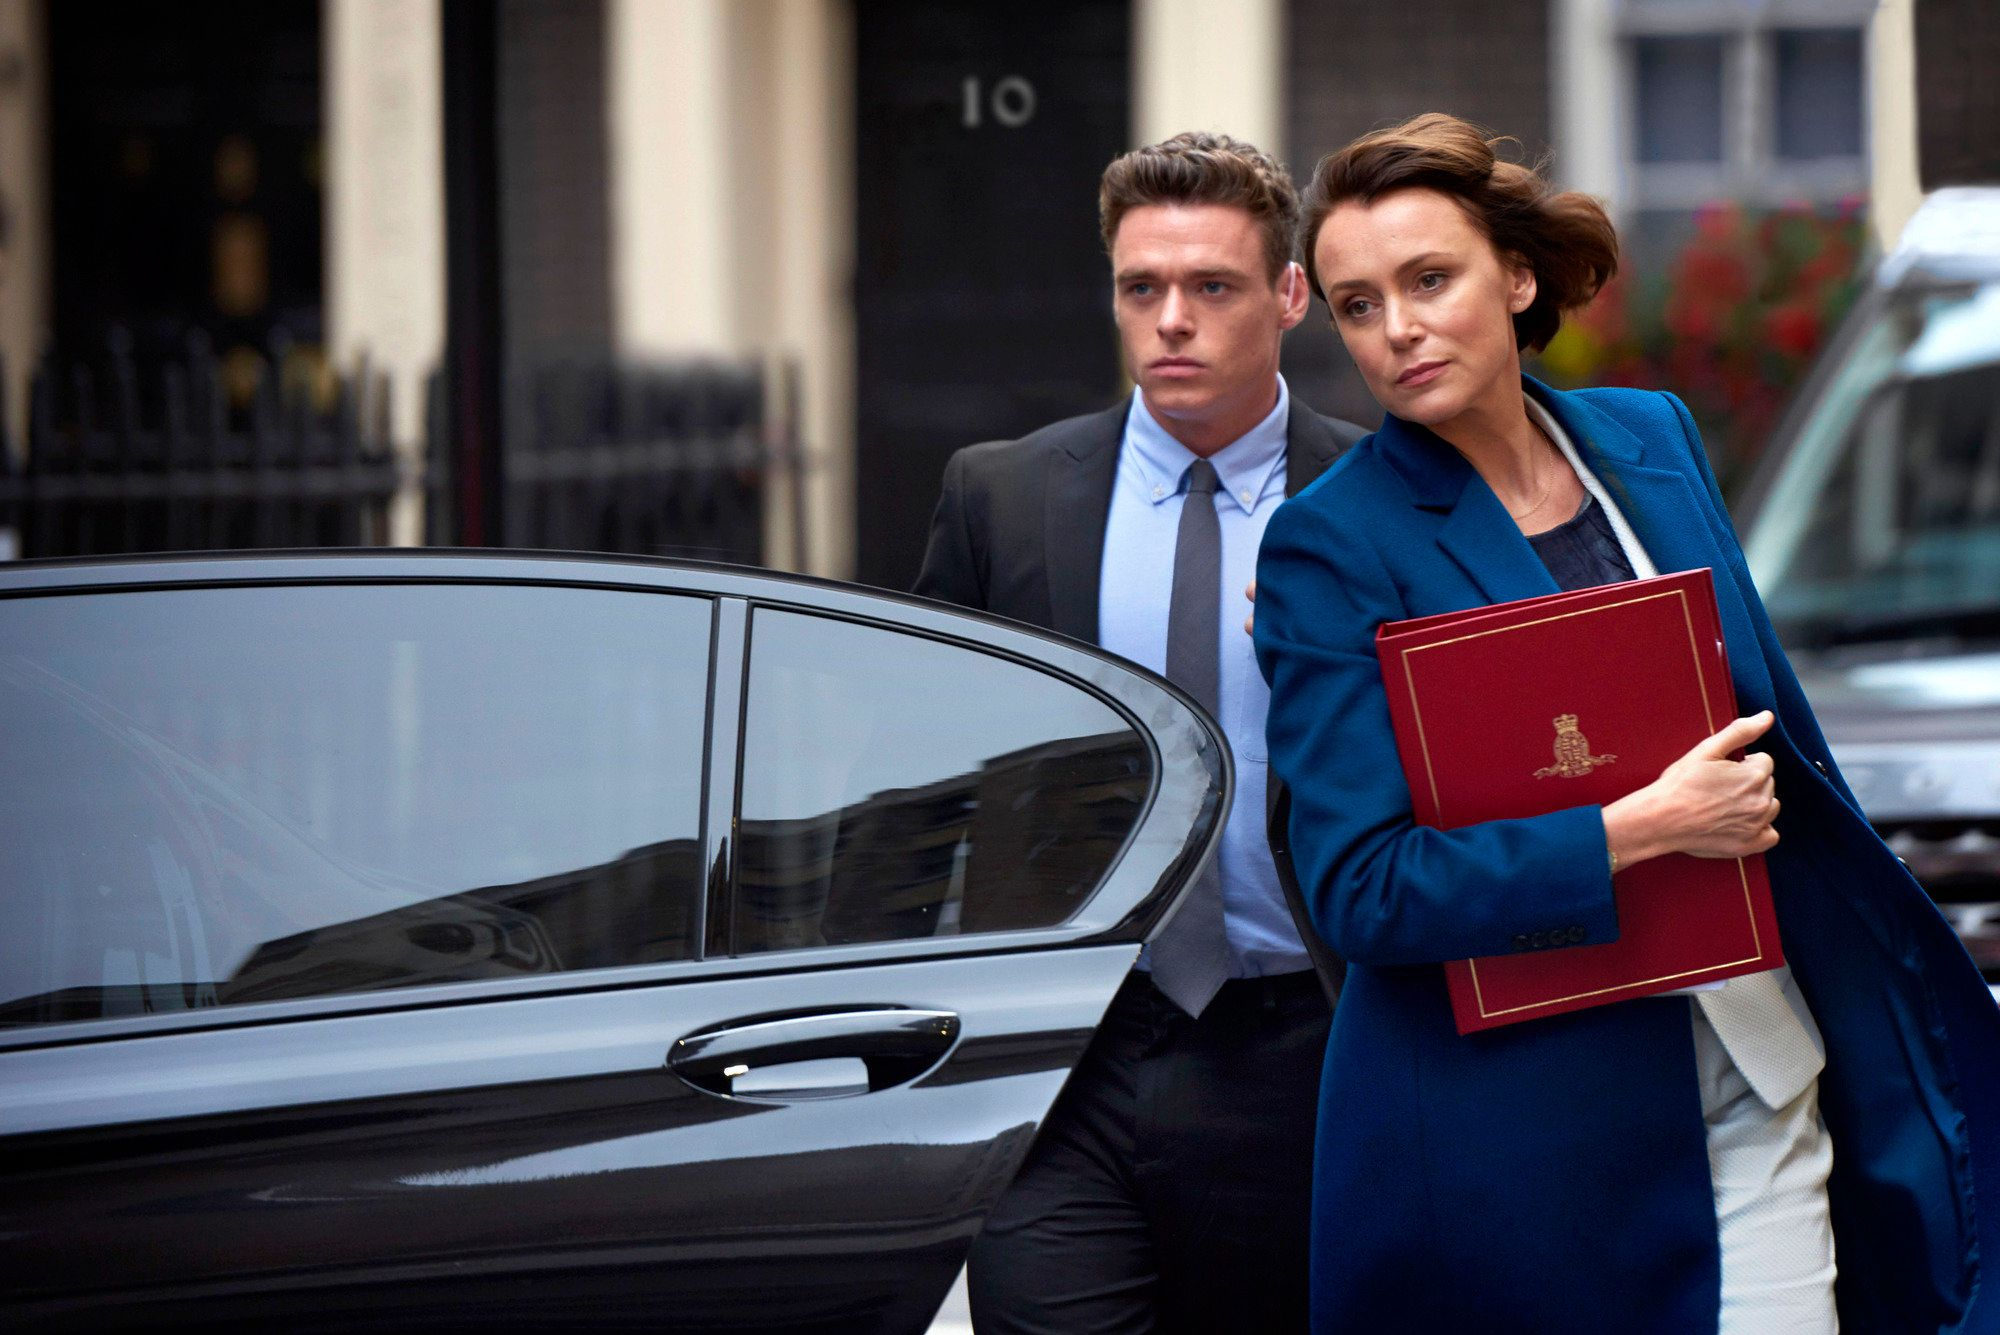 'Bodyguard': The 9 Burning Questions We Have After Episode